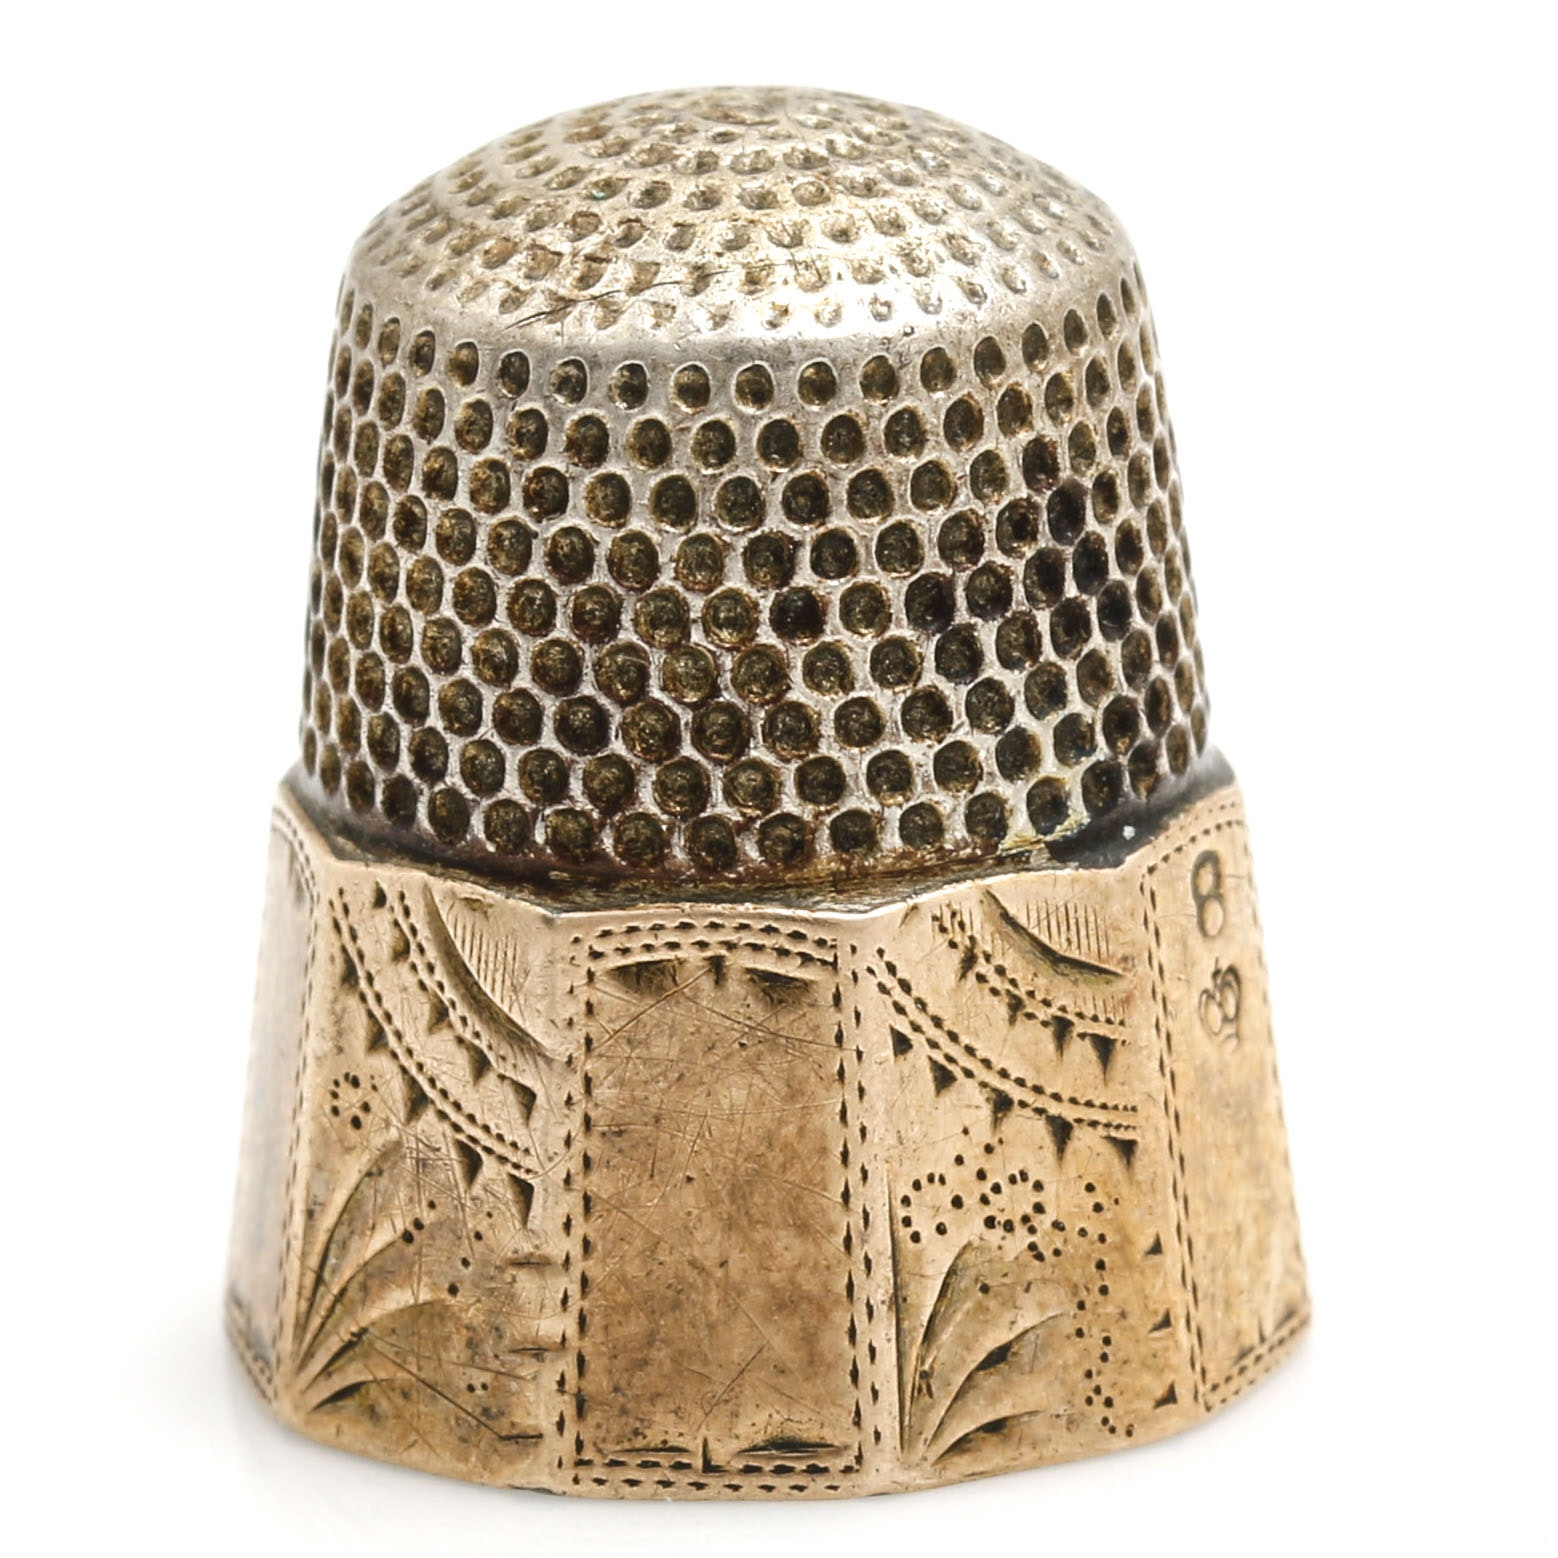 10K Yellow Gold and 900 Silver Thimble